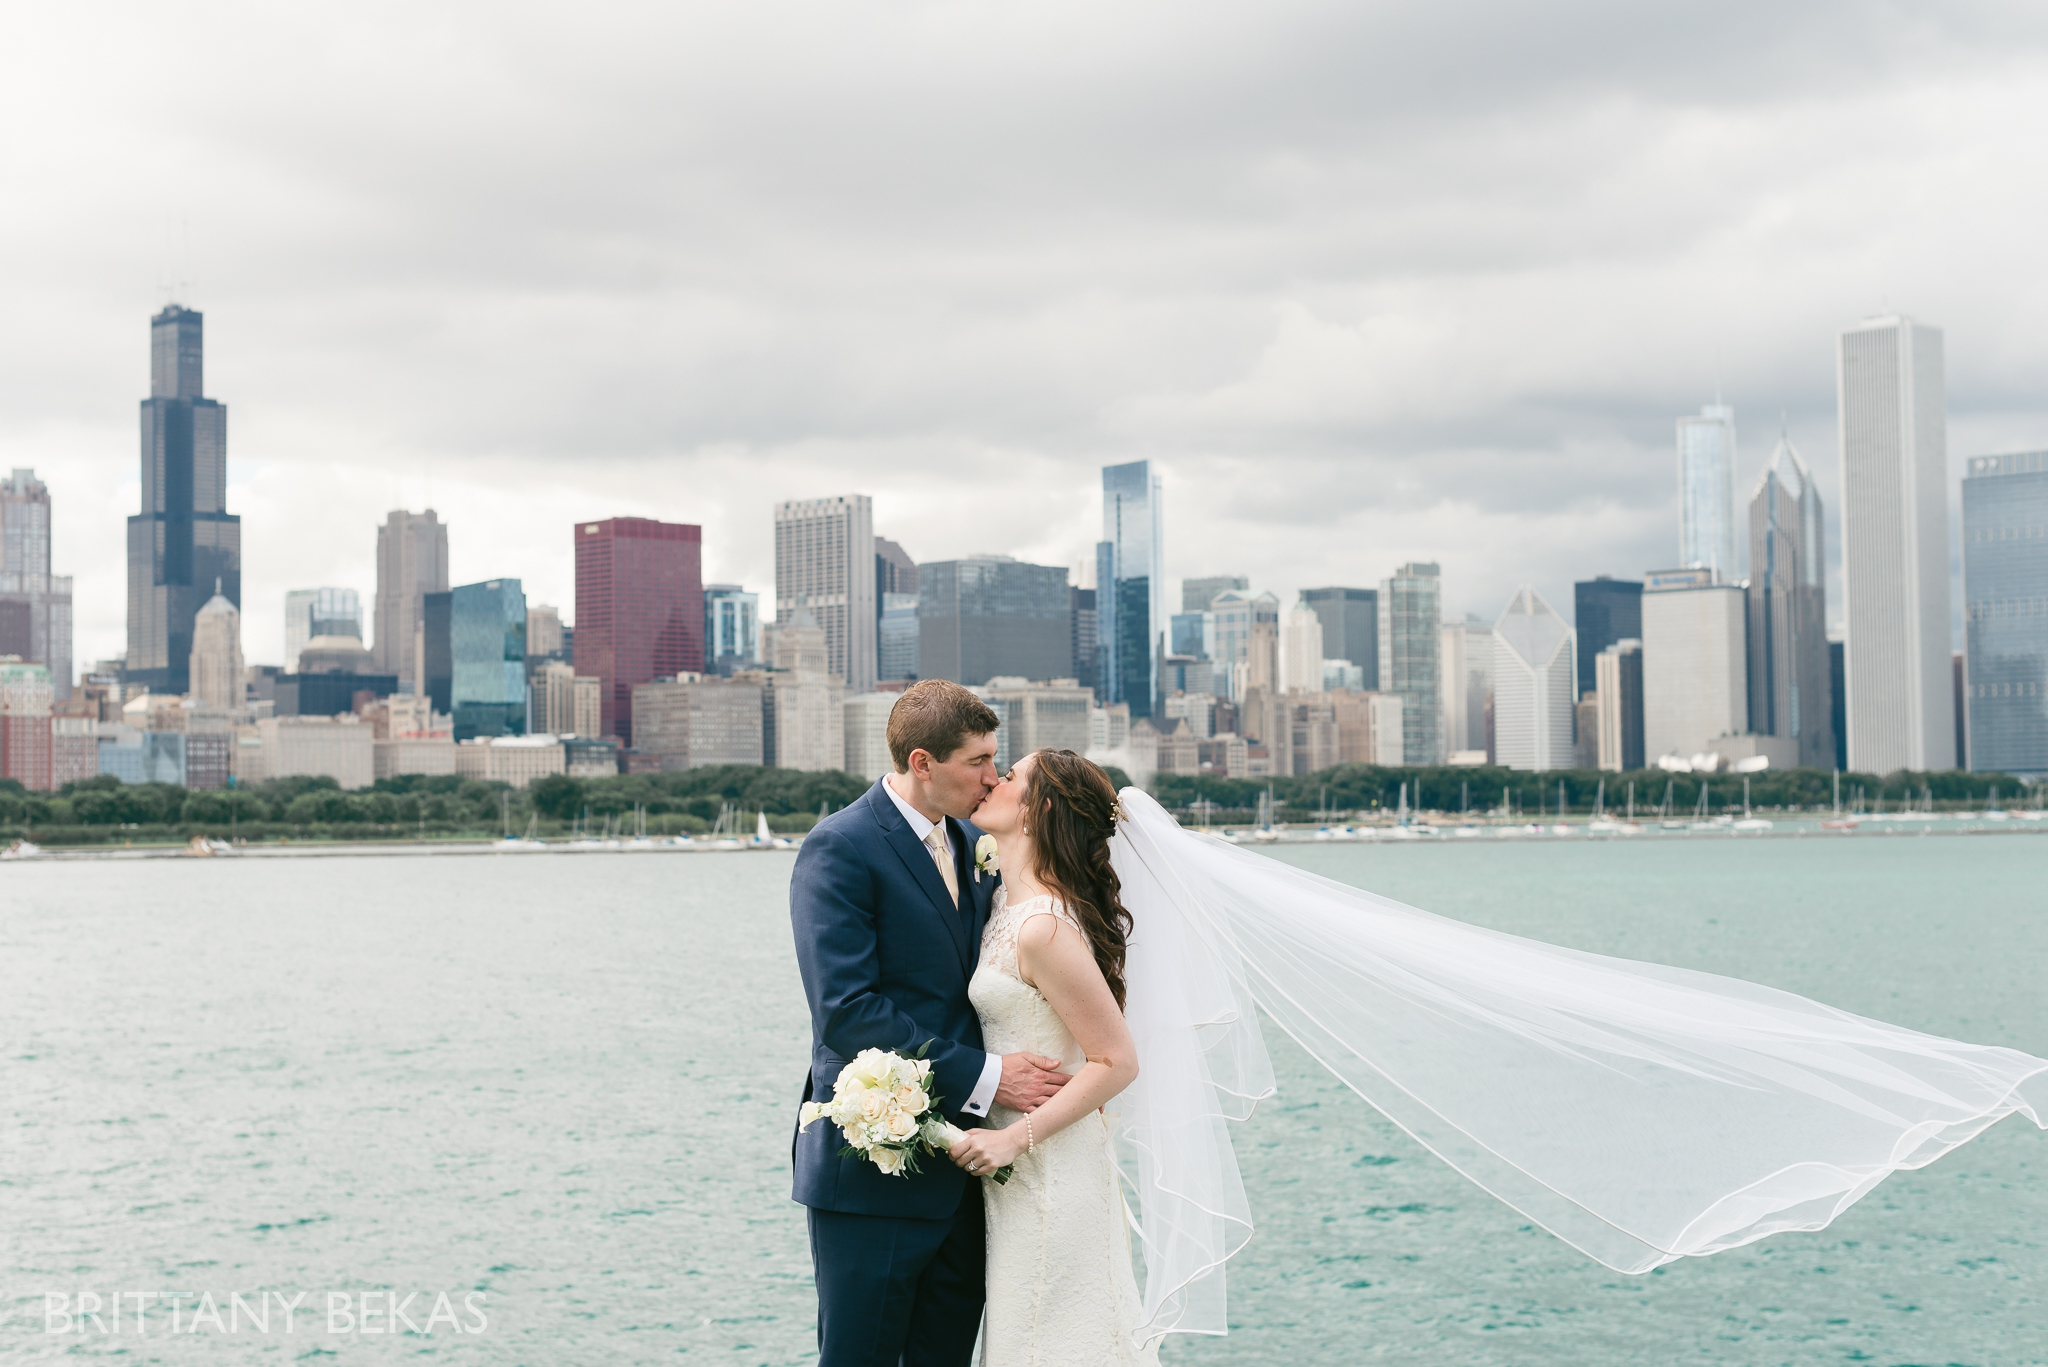 Chicago Wedding Photos Osteria Via Stato - Brittany Bekas Photography_0014